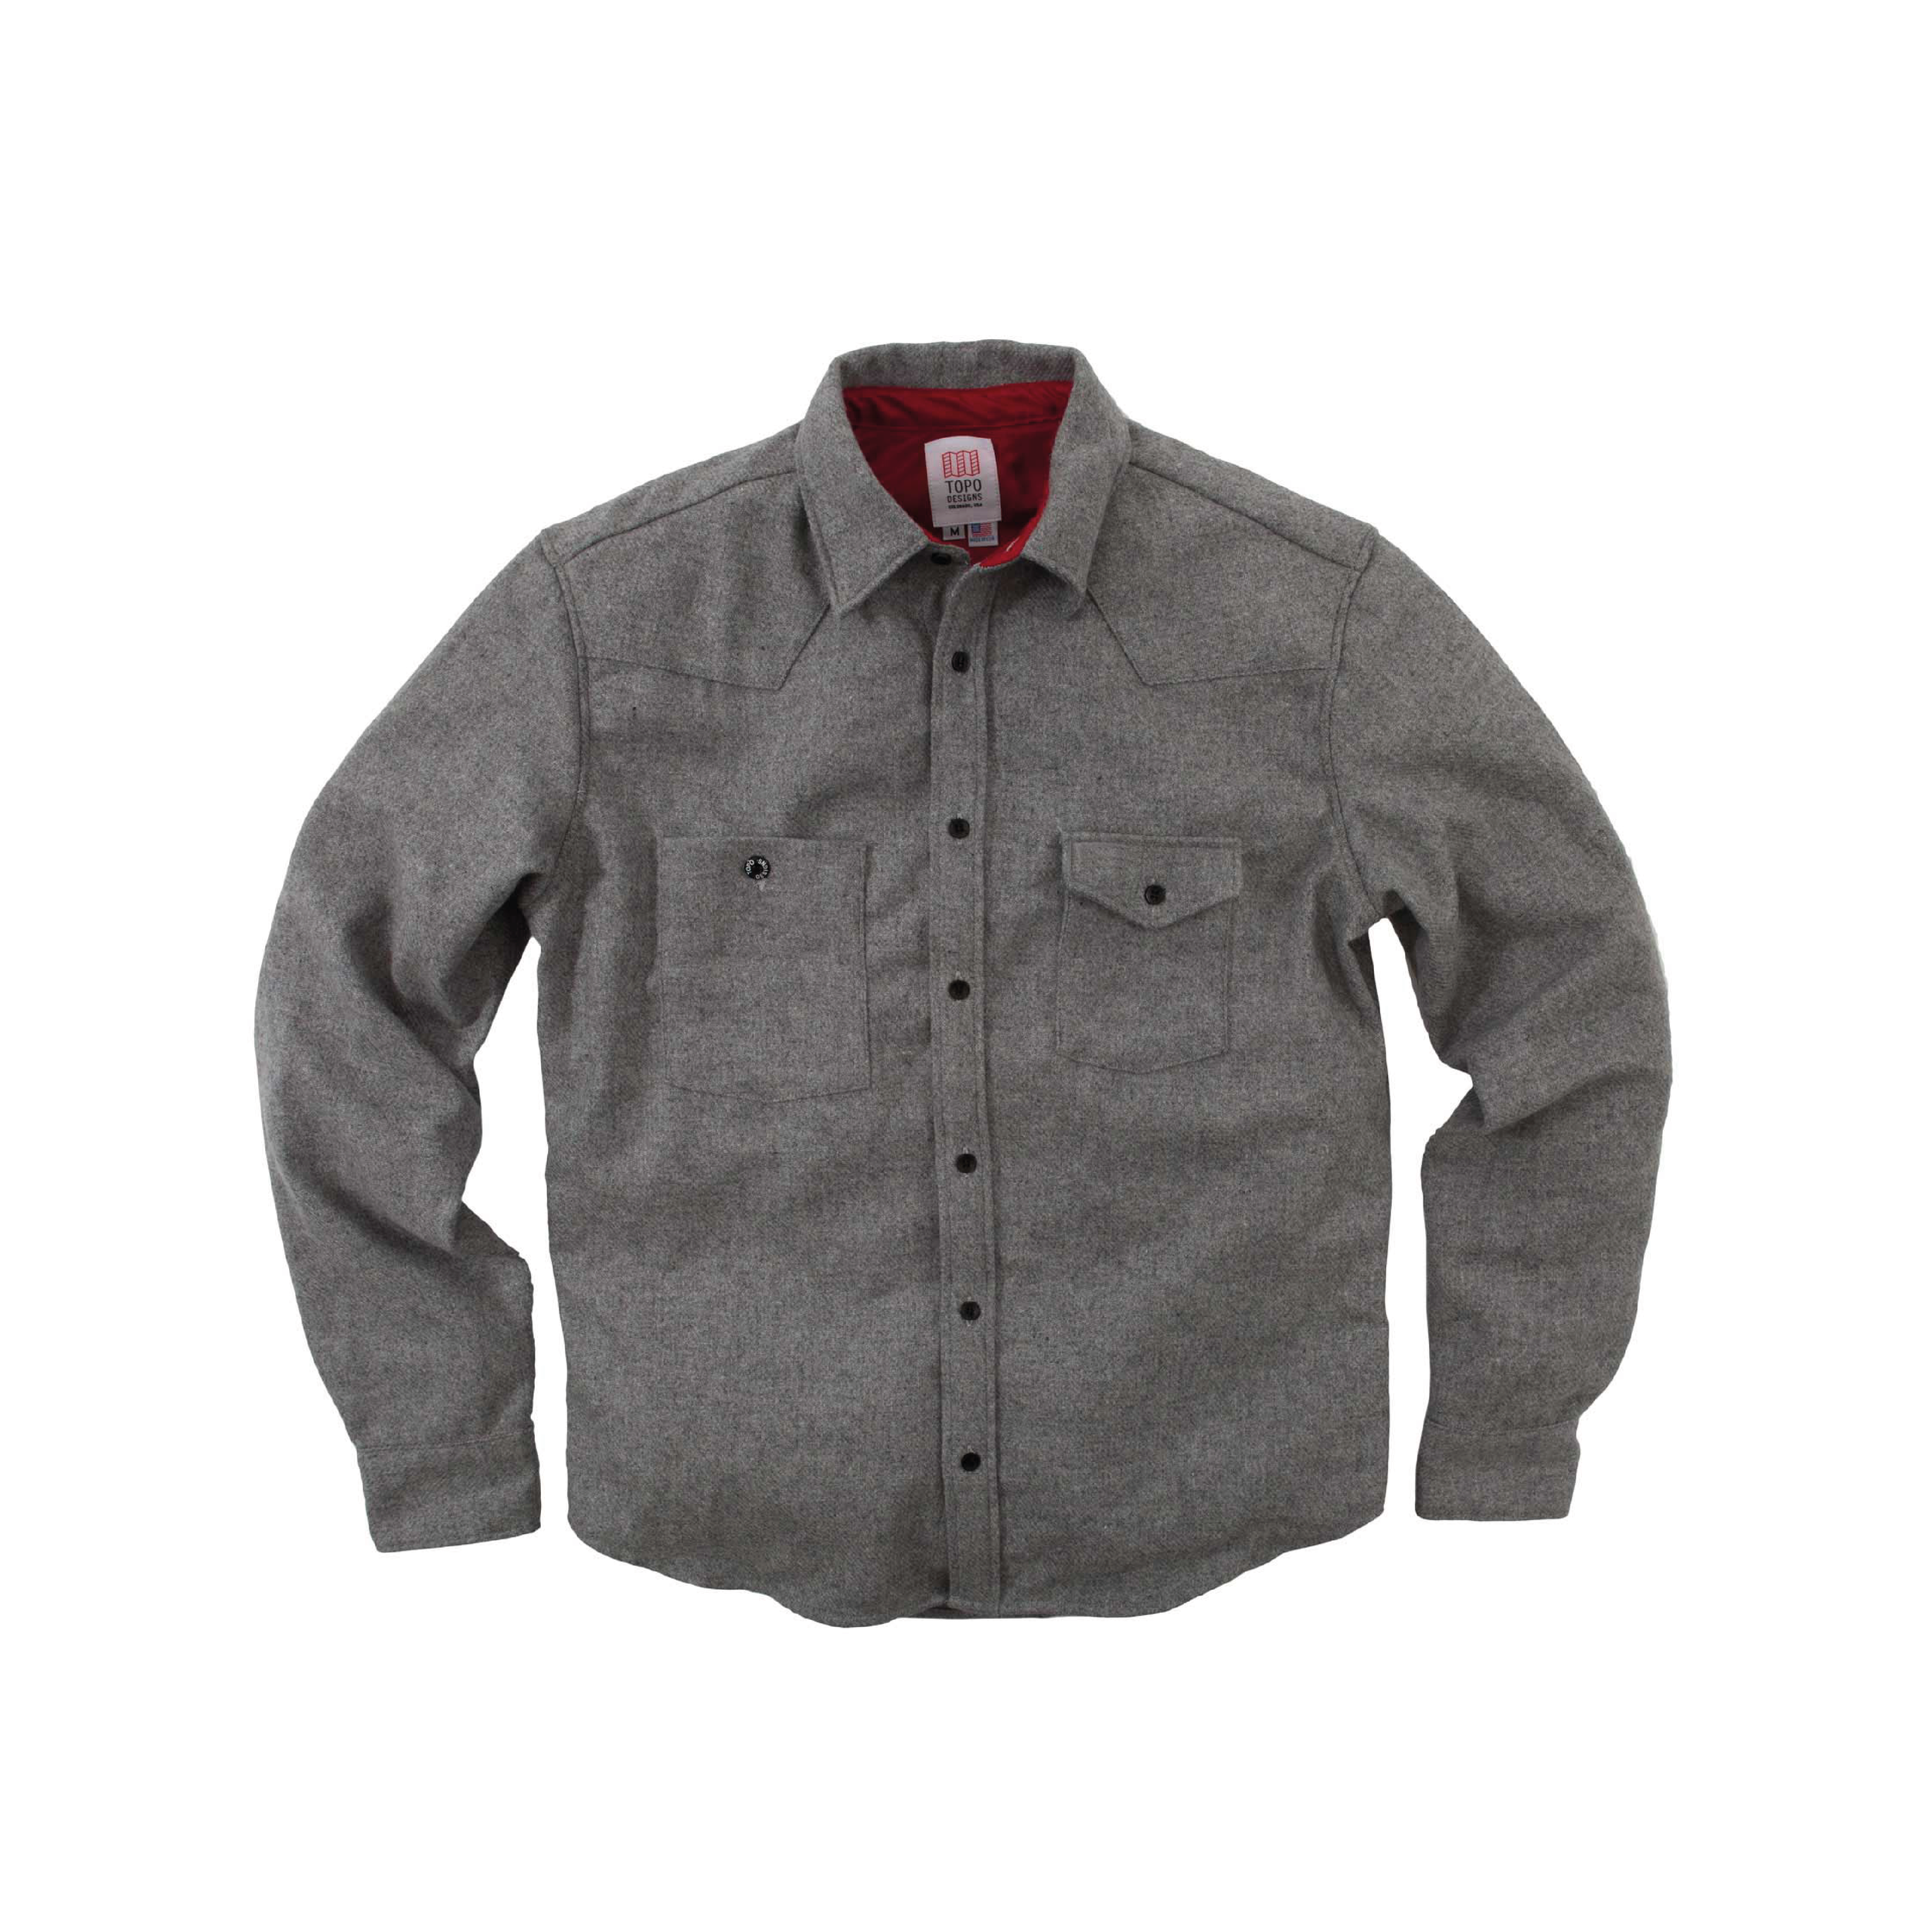 WORK SHIRT    By  Topo Designs     PLACE HOLDER PLACE HOLDER PLACE HOLDER PLACE HOLDER    SHOP NOW        £90